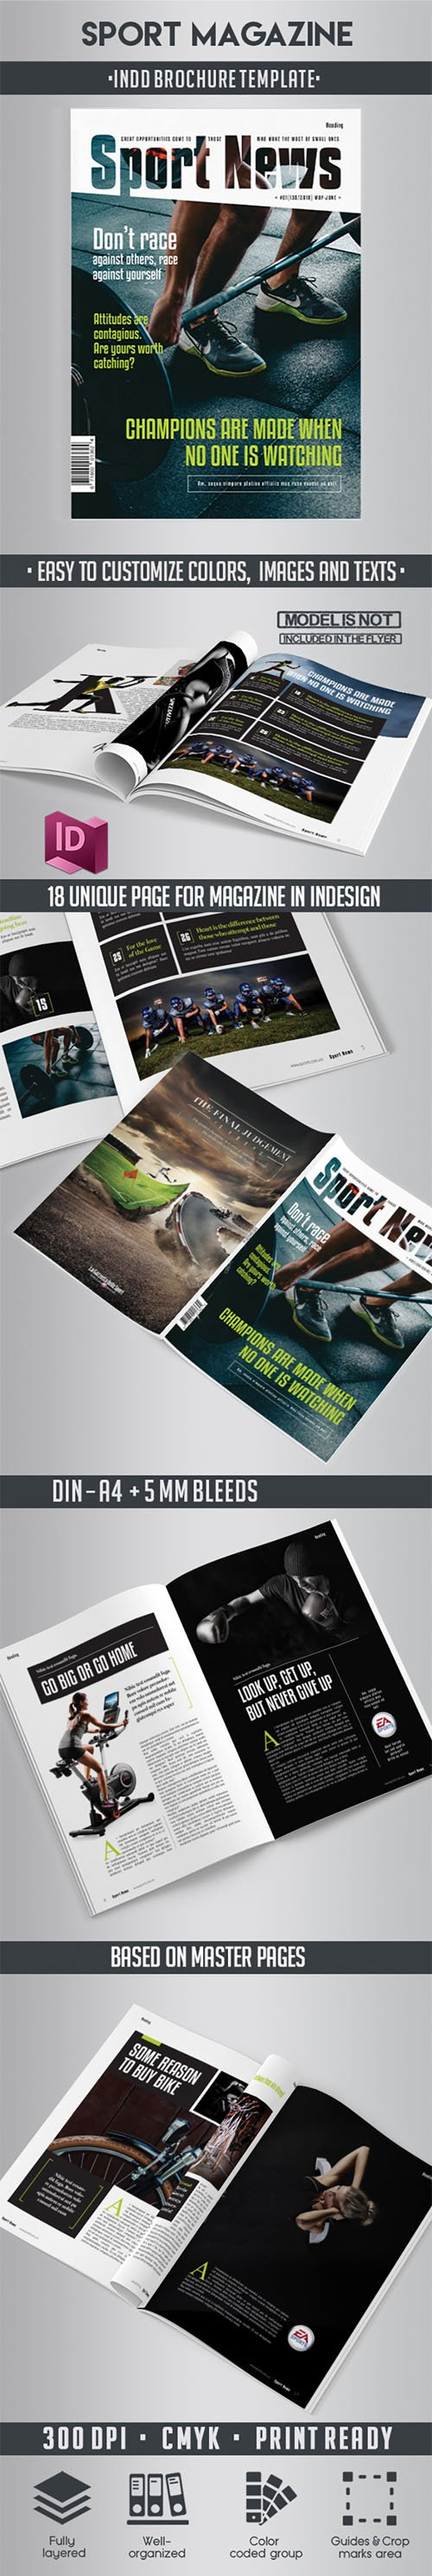 Sport Magazine Indd Template